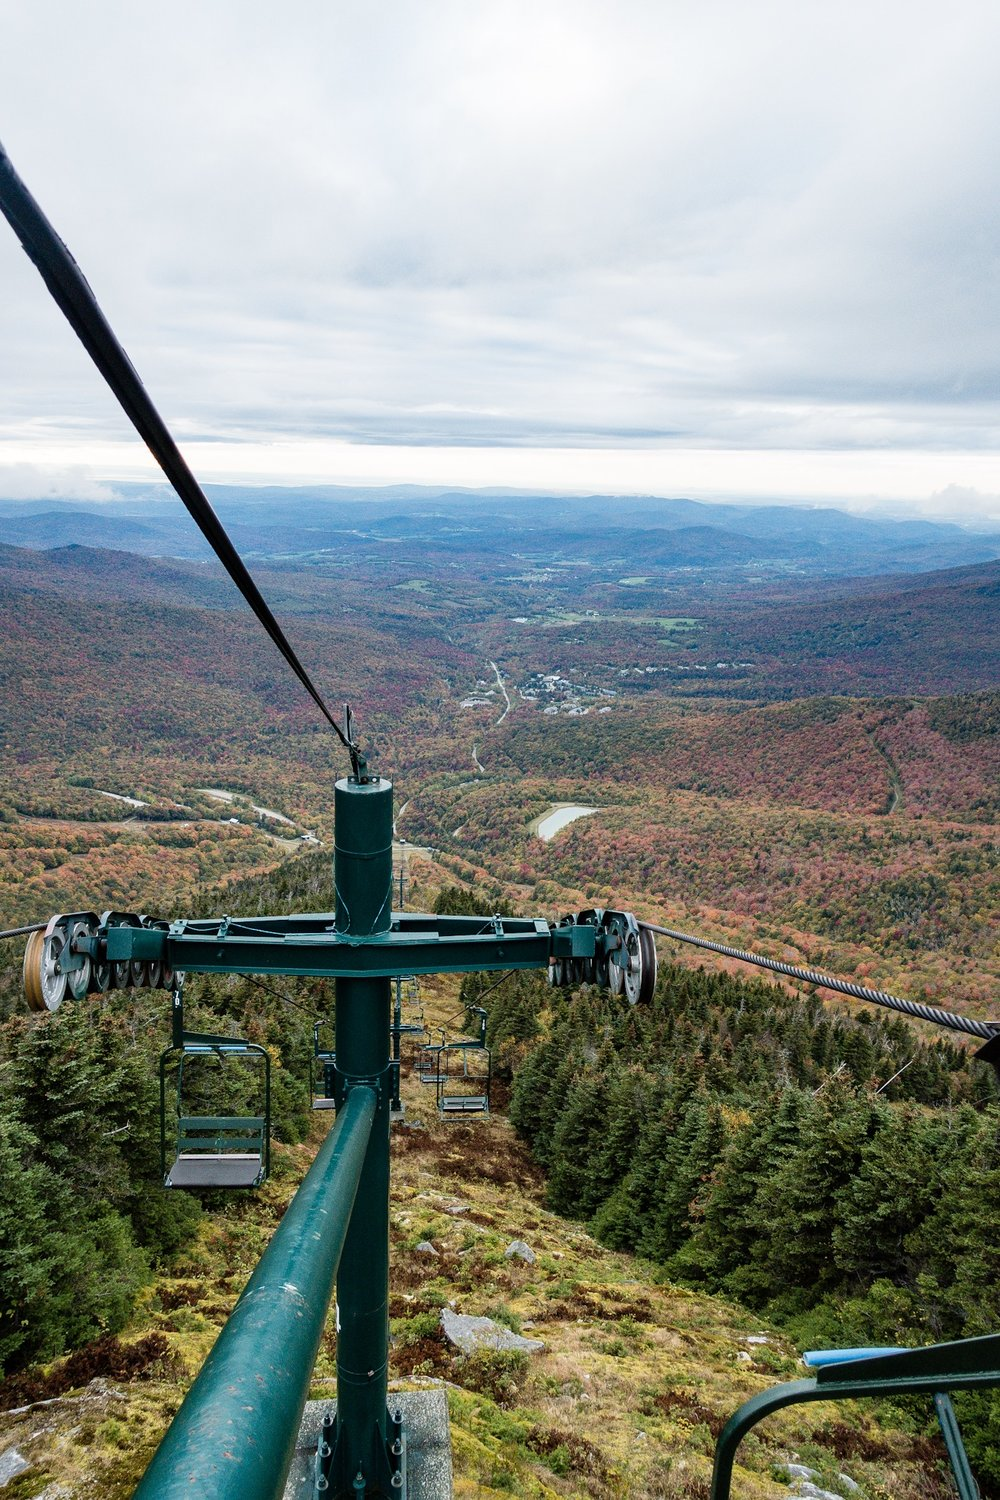 View from the top of the Ski Lift